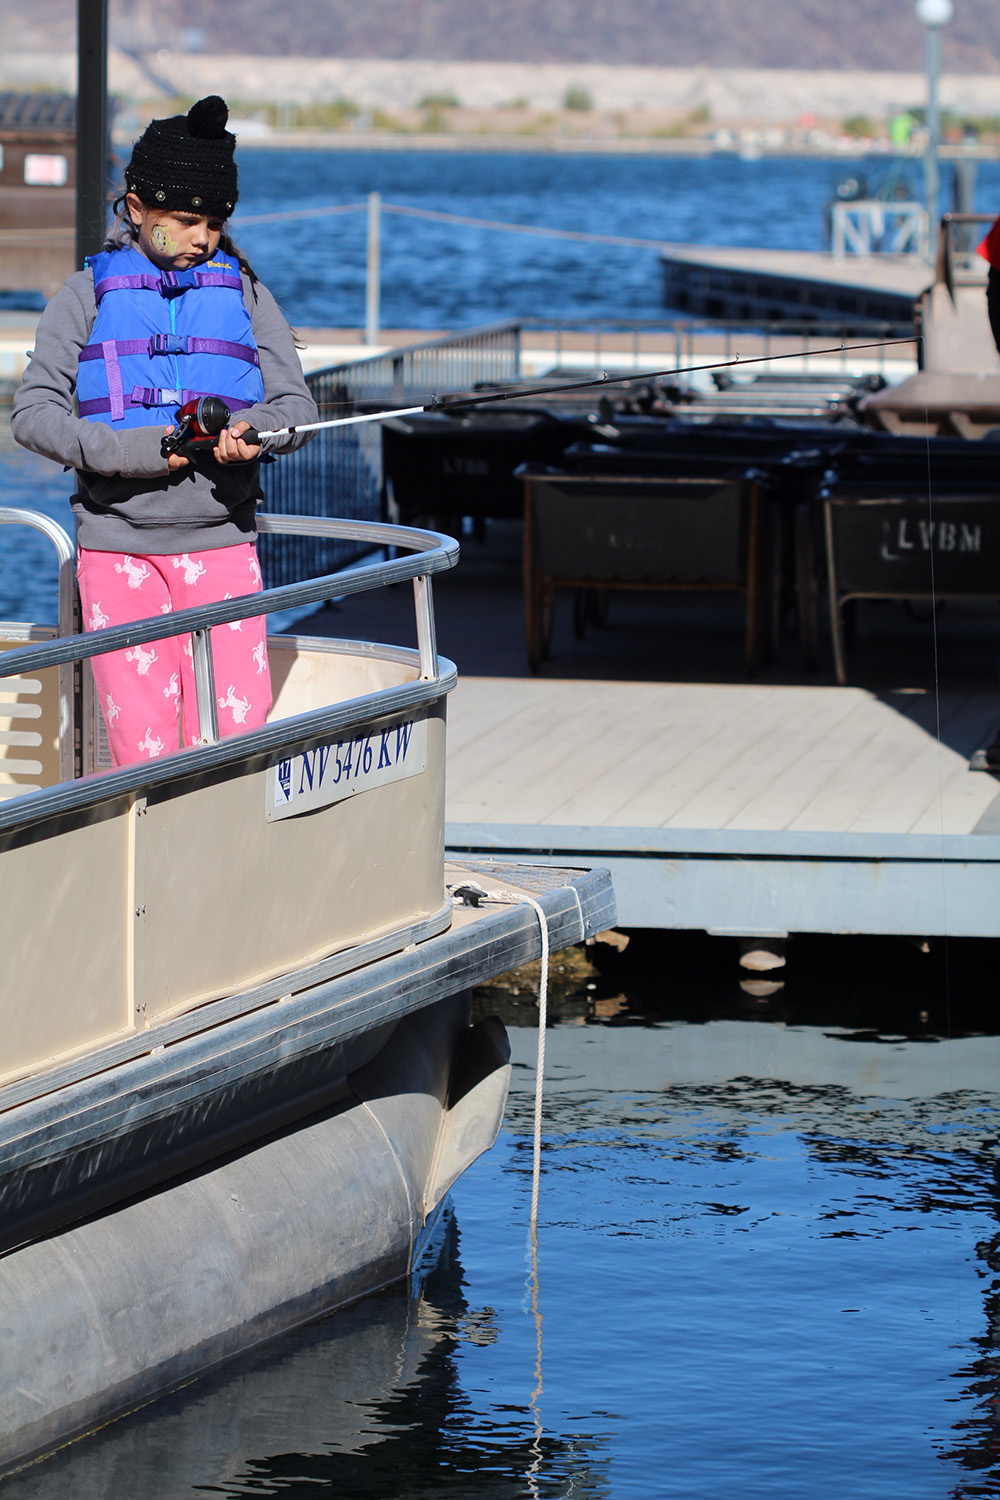 A girl fishing from a boat at the C.A.S.T. for Kids event at Lake Mead.